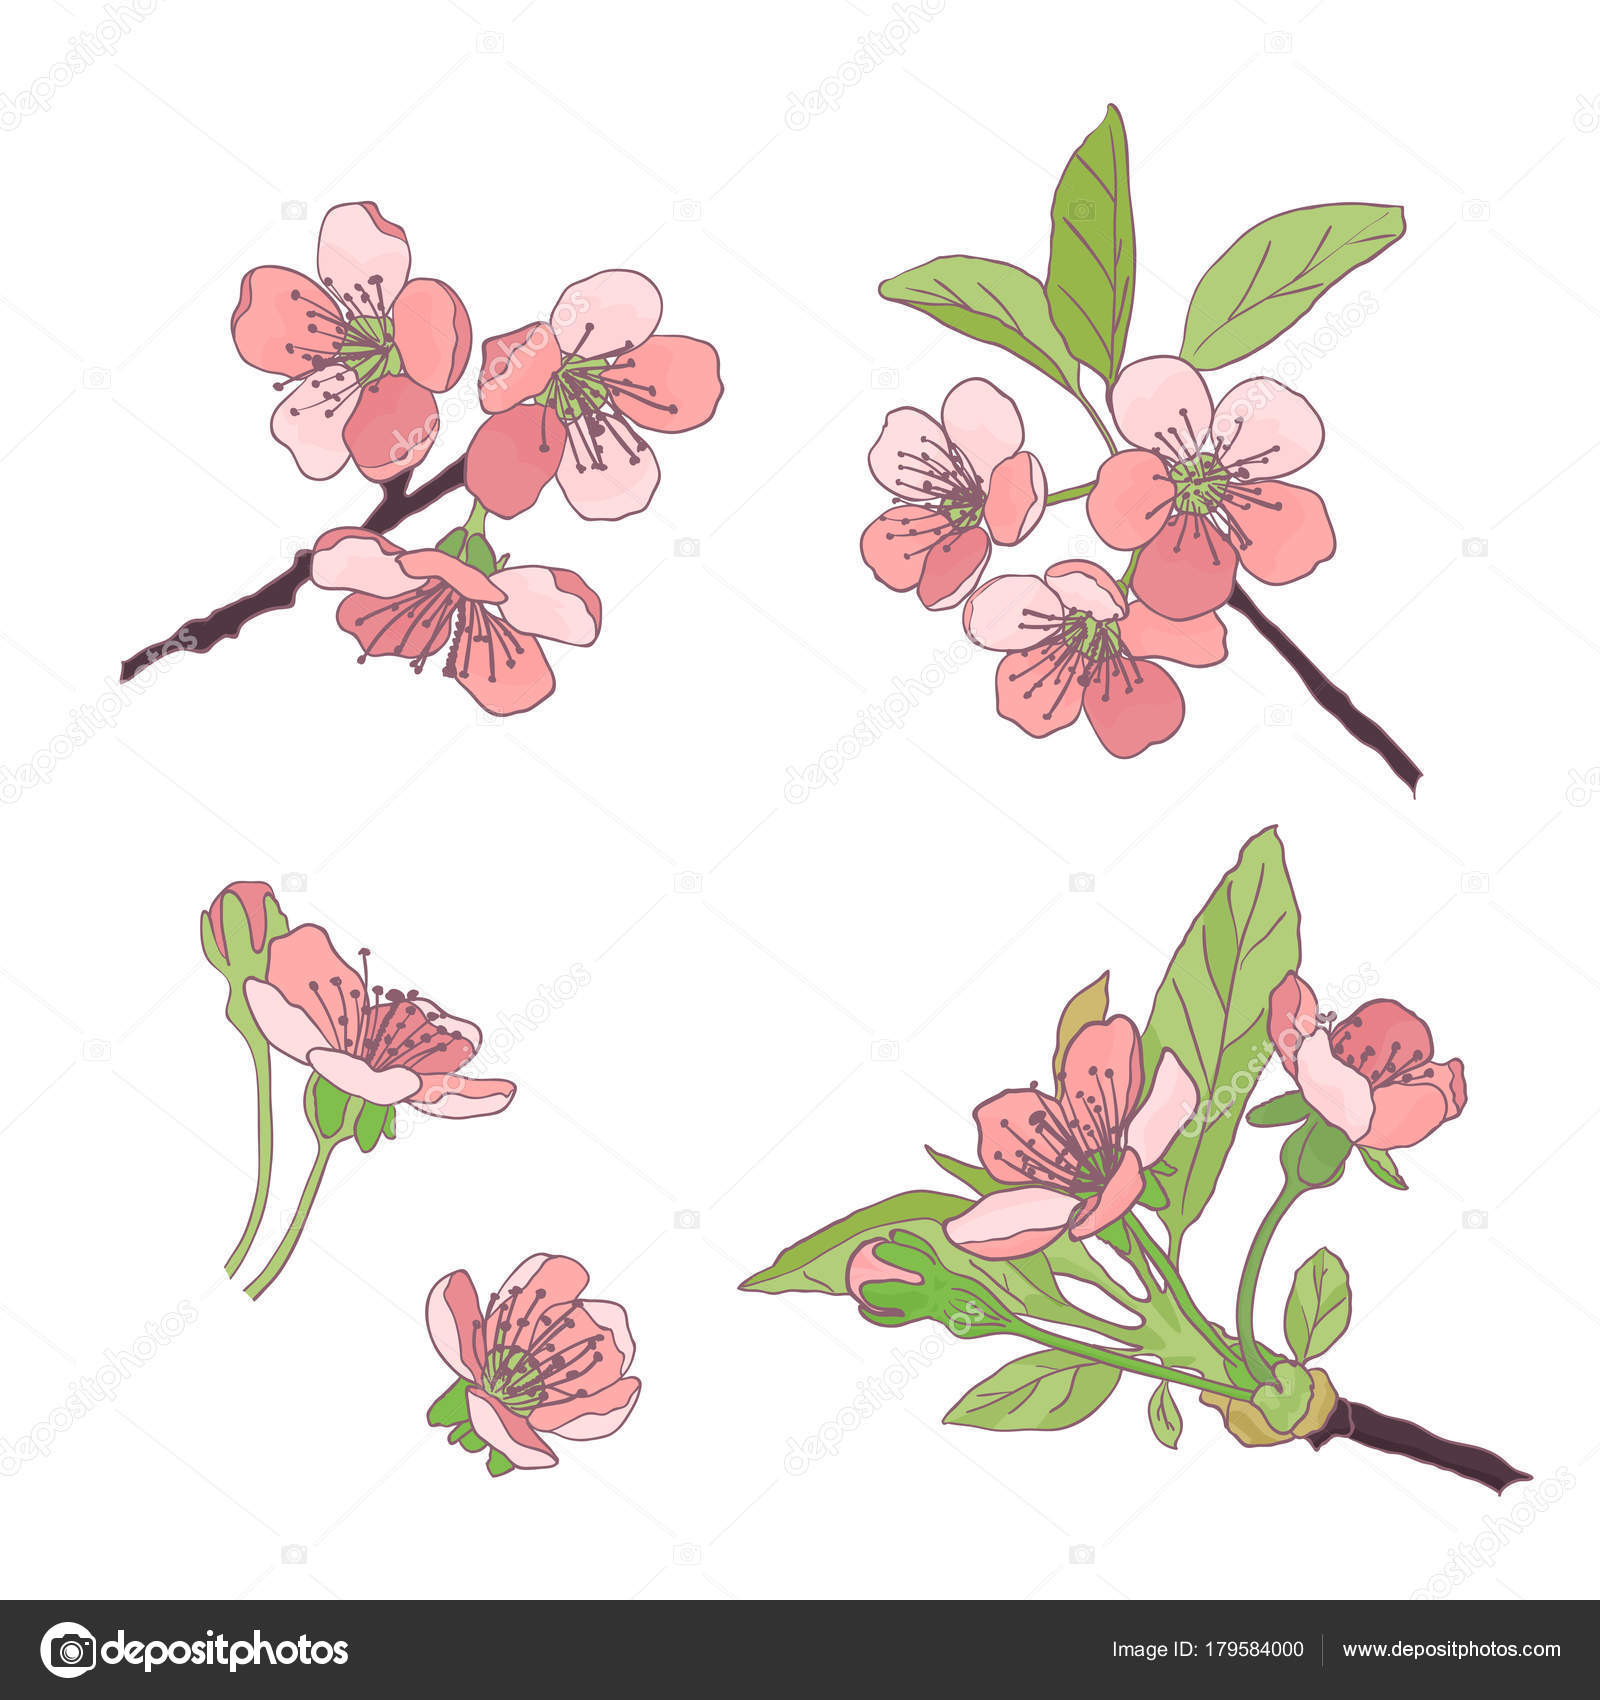 Set cherry blossoms blooming cherry spring flowers drawing set of hand drawn pink flowers cherry blossomsketch vector illustration isolated realistic hand drawing of twigs branches stems with pink flowers and mightylinksfo